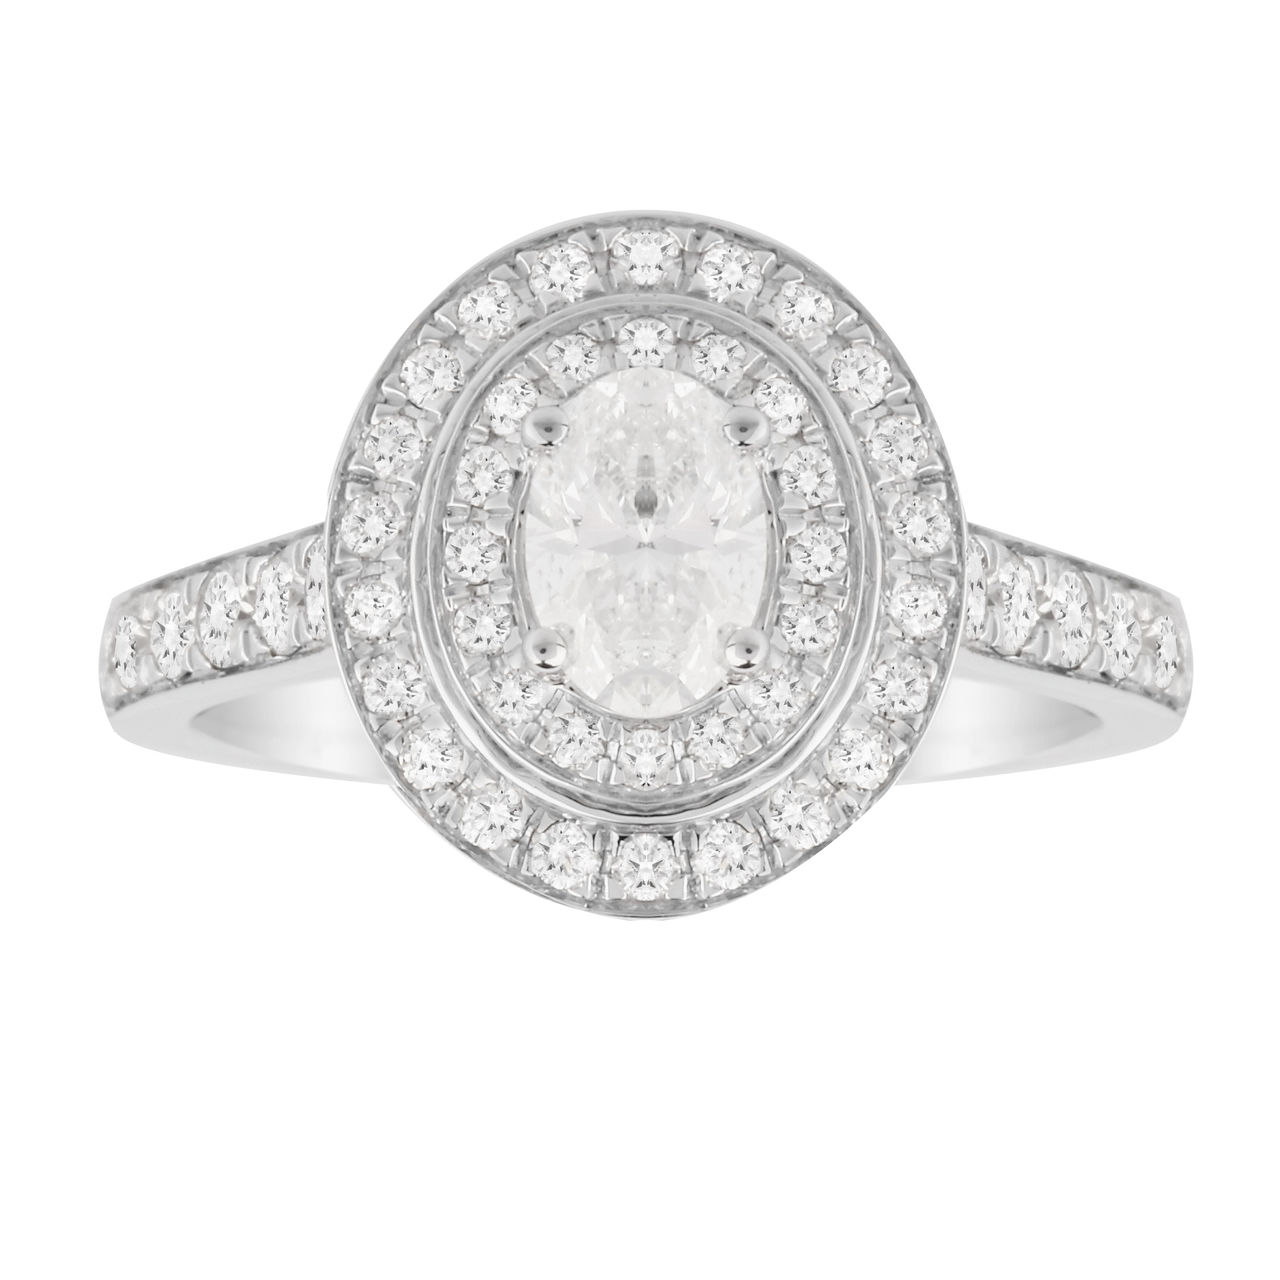 or rings login an prague oval ring engagement cut earn create points to account